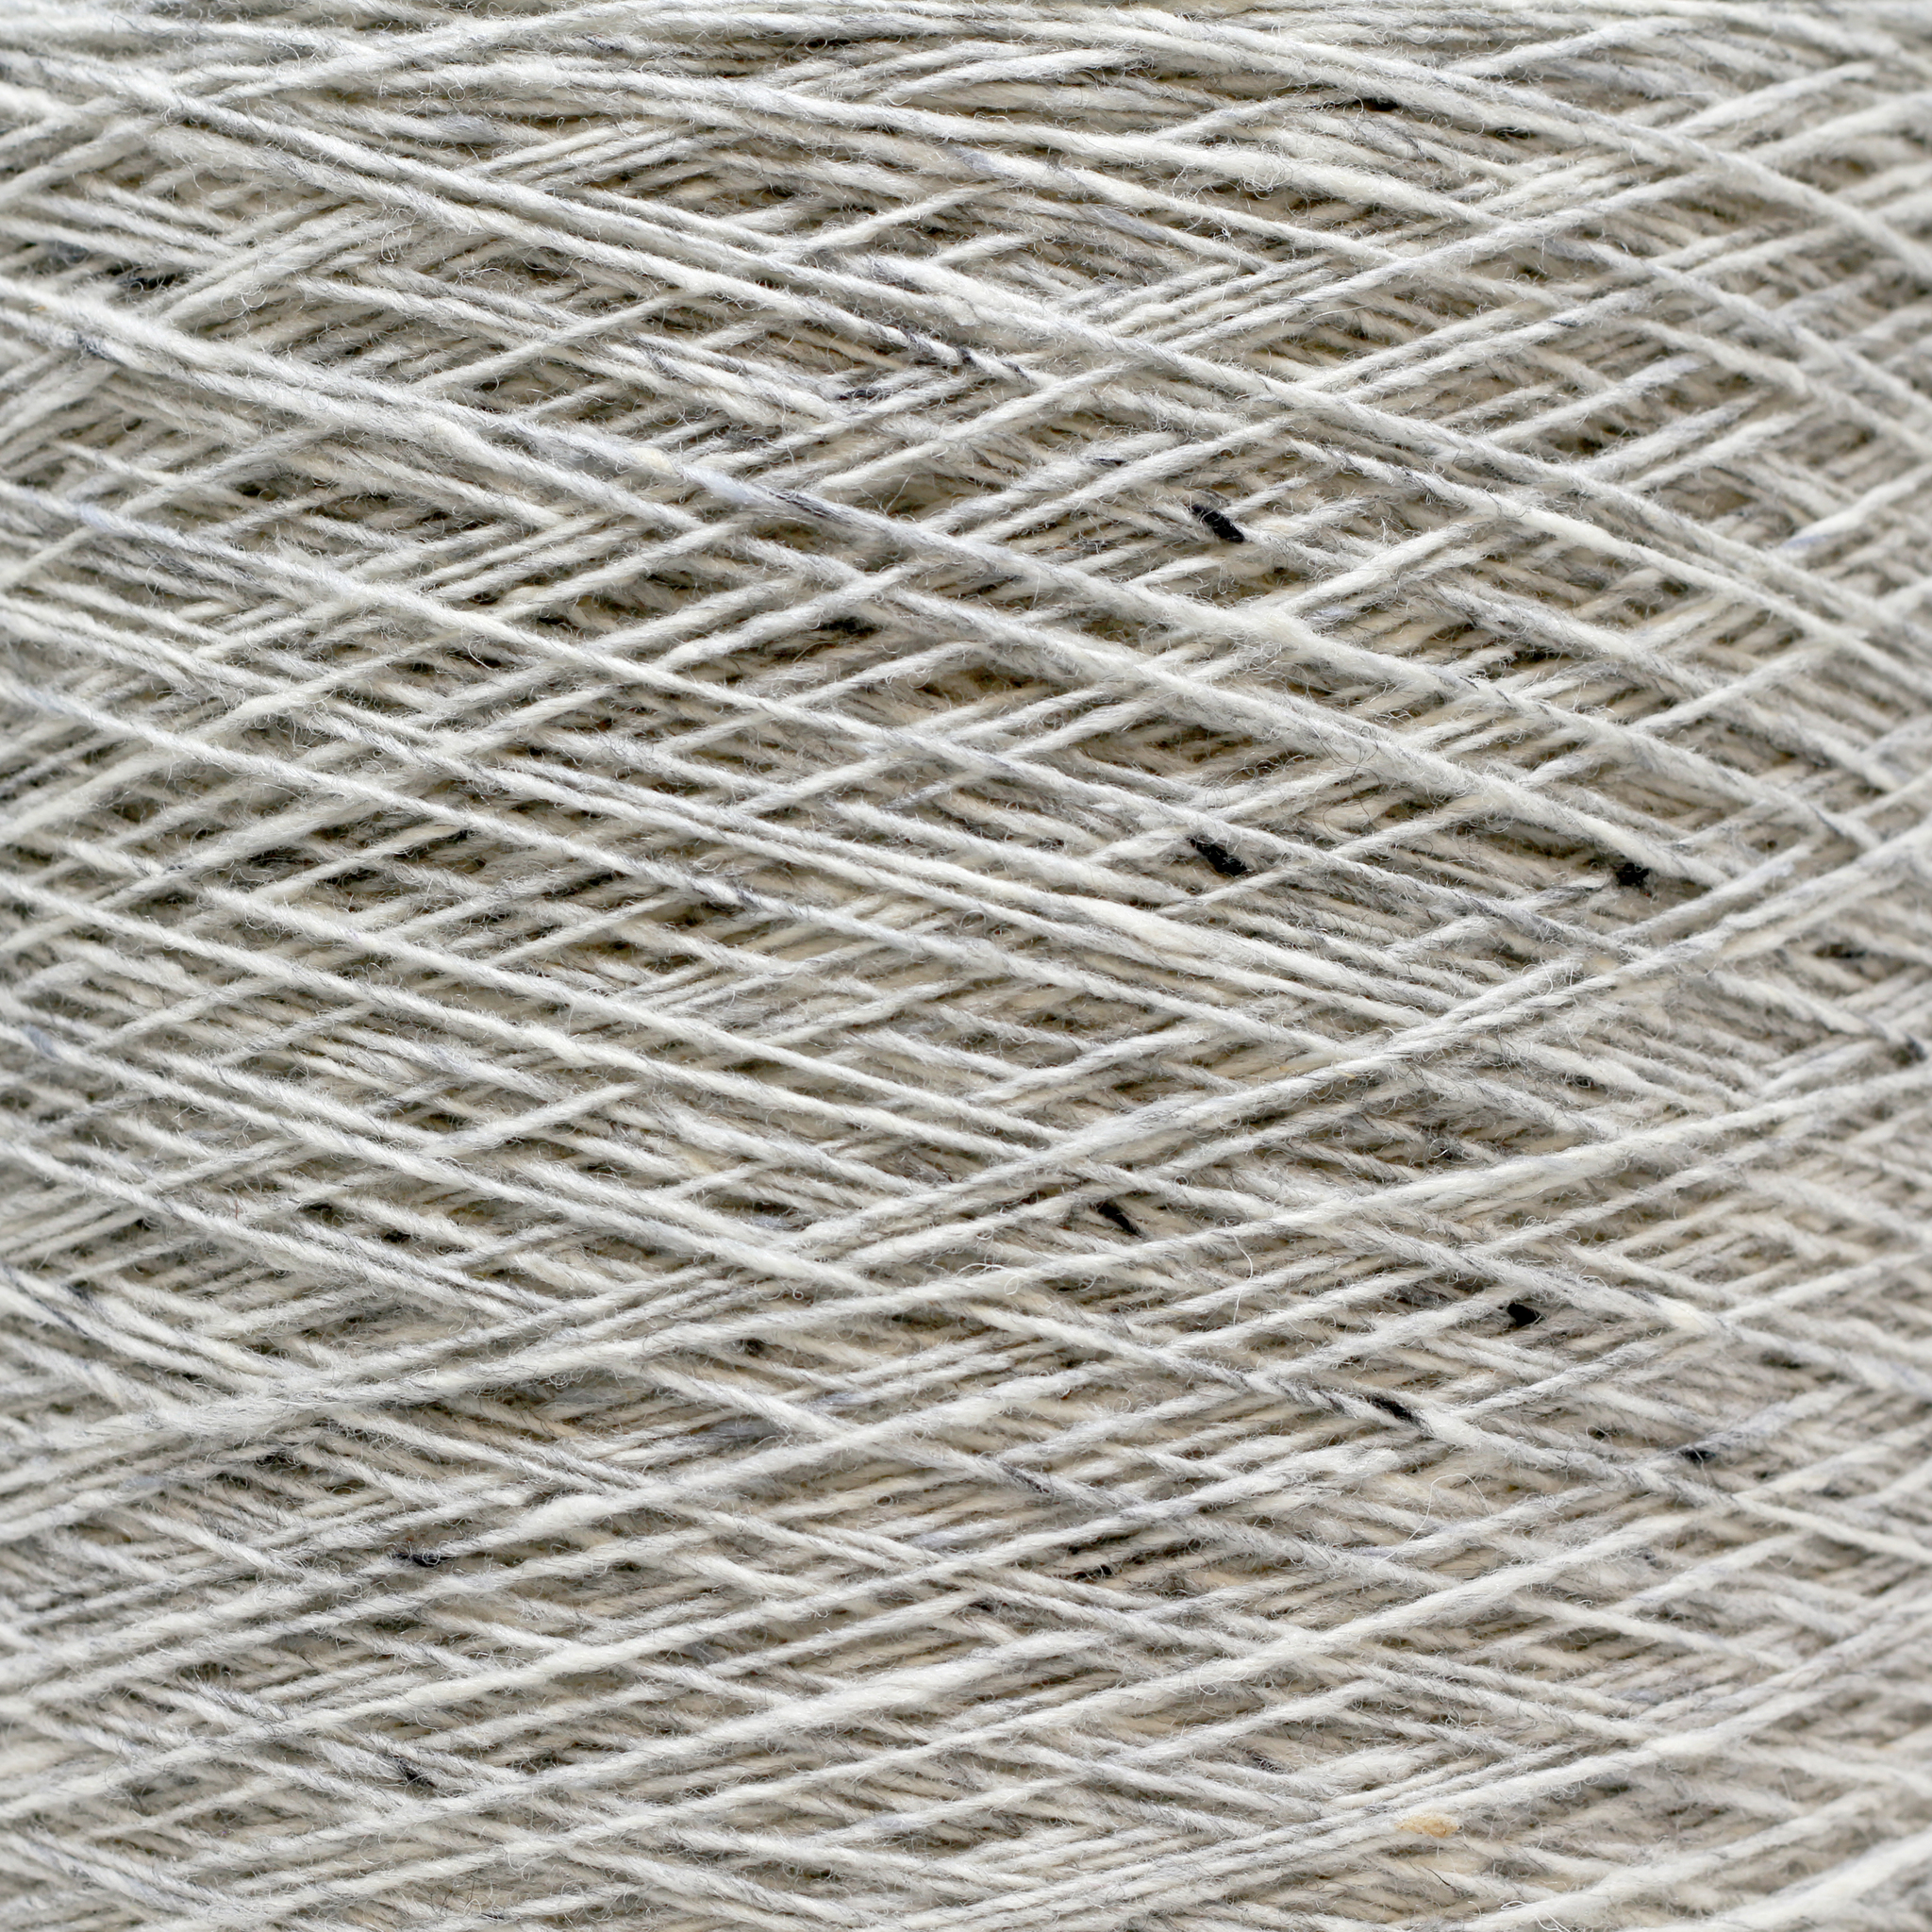 Knoll Yarns Soft Donegal (одинарный твид) - 5603